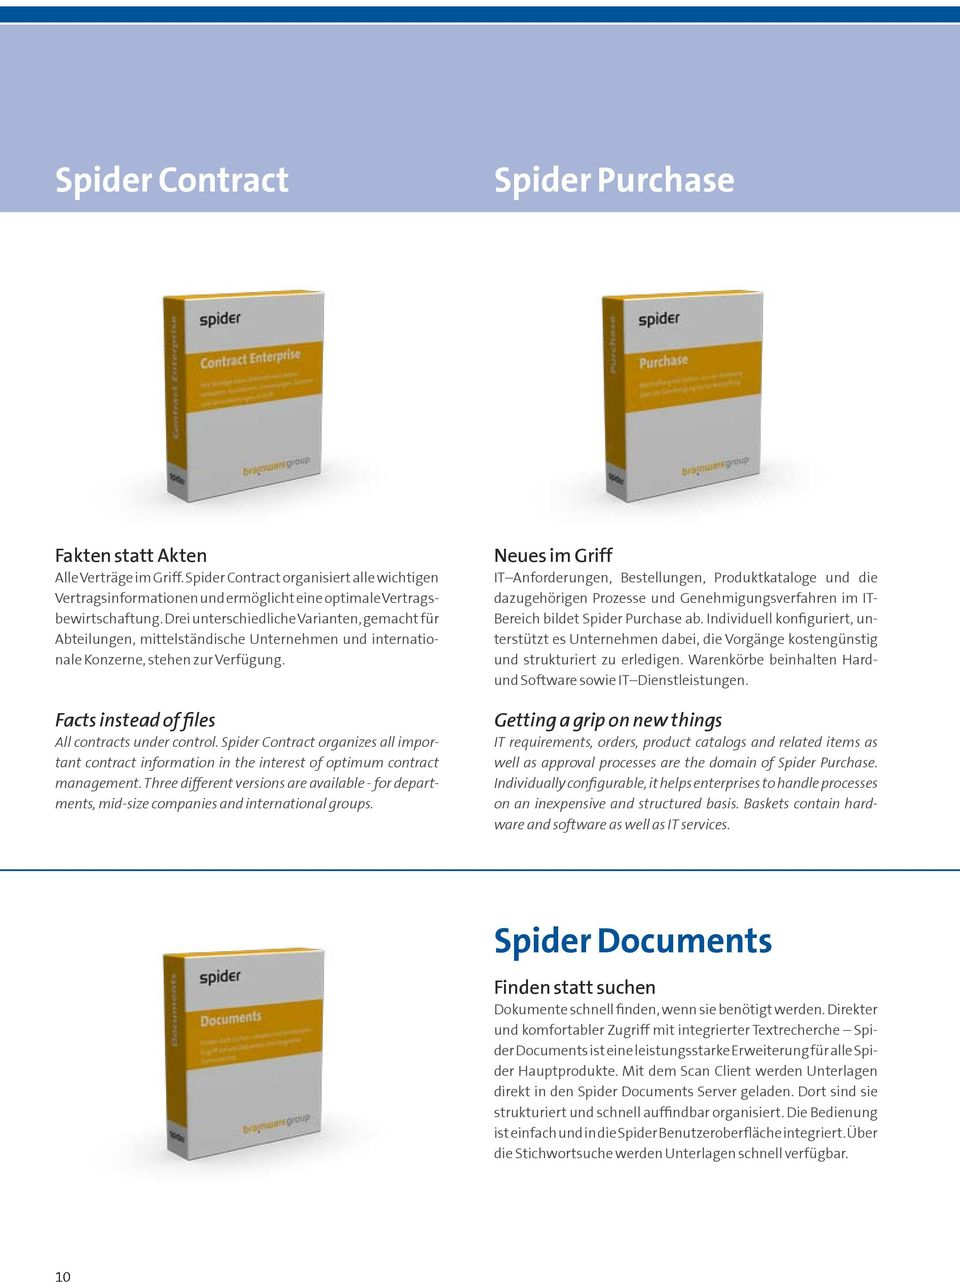 Spider Contract organizes all important contract information in the interest of optimum contract management.